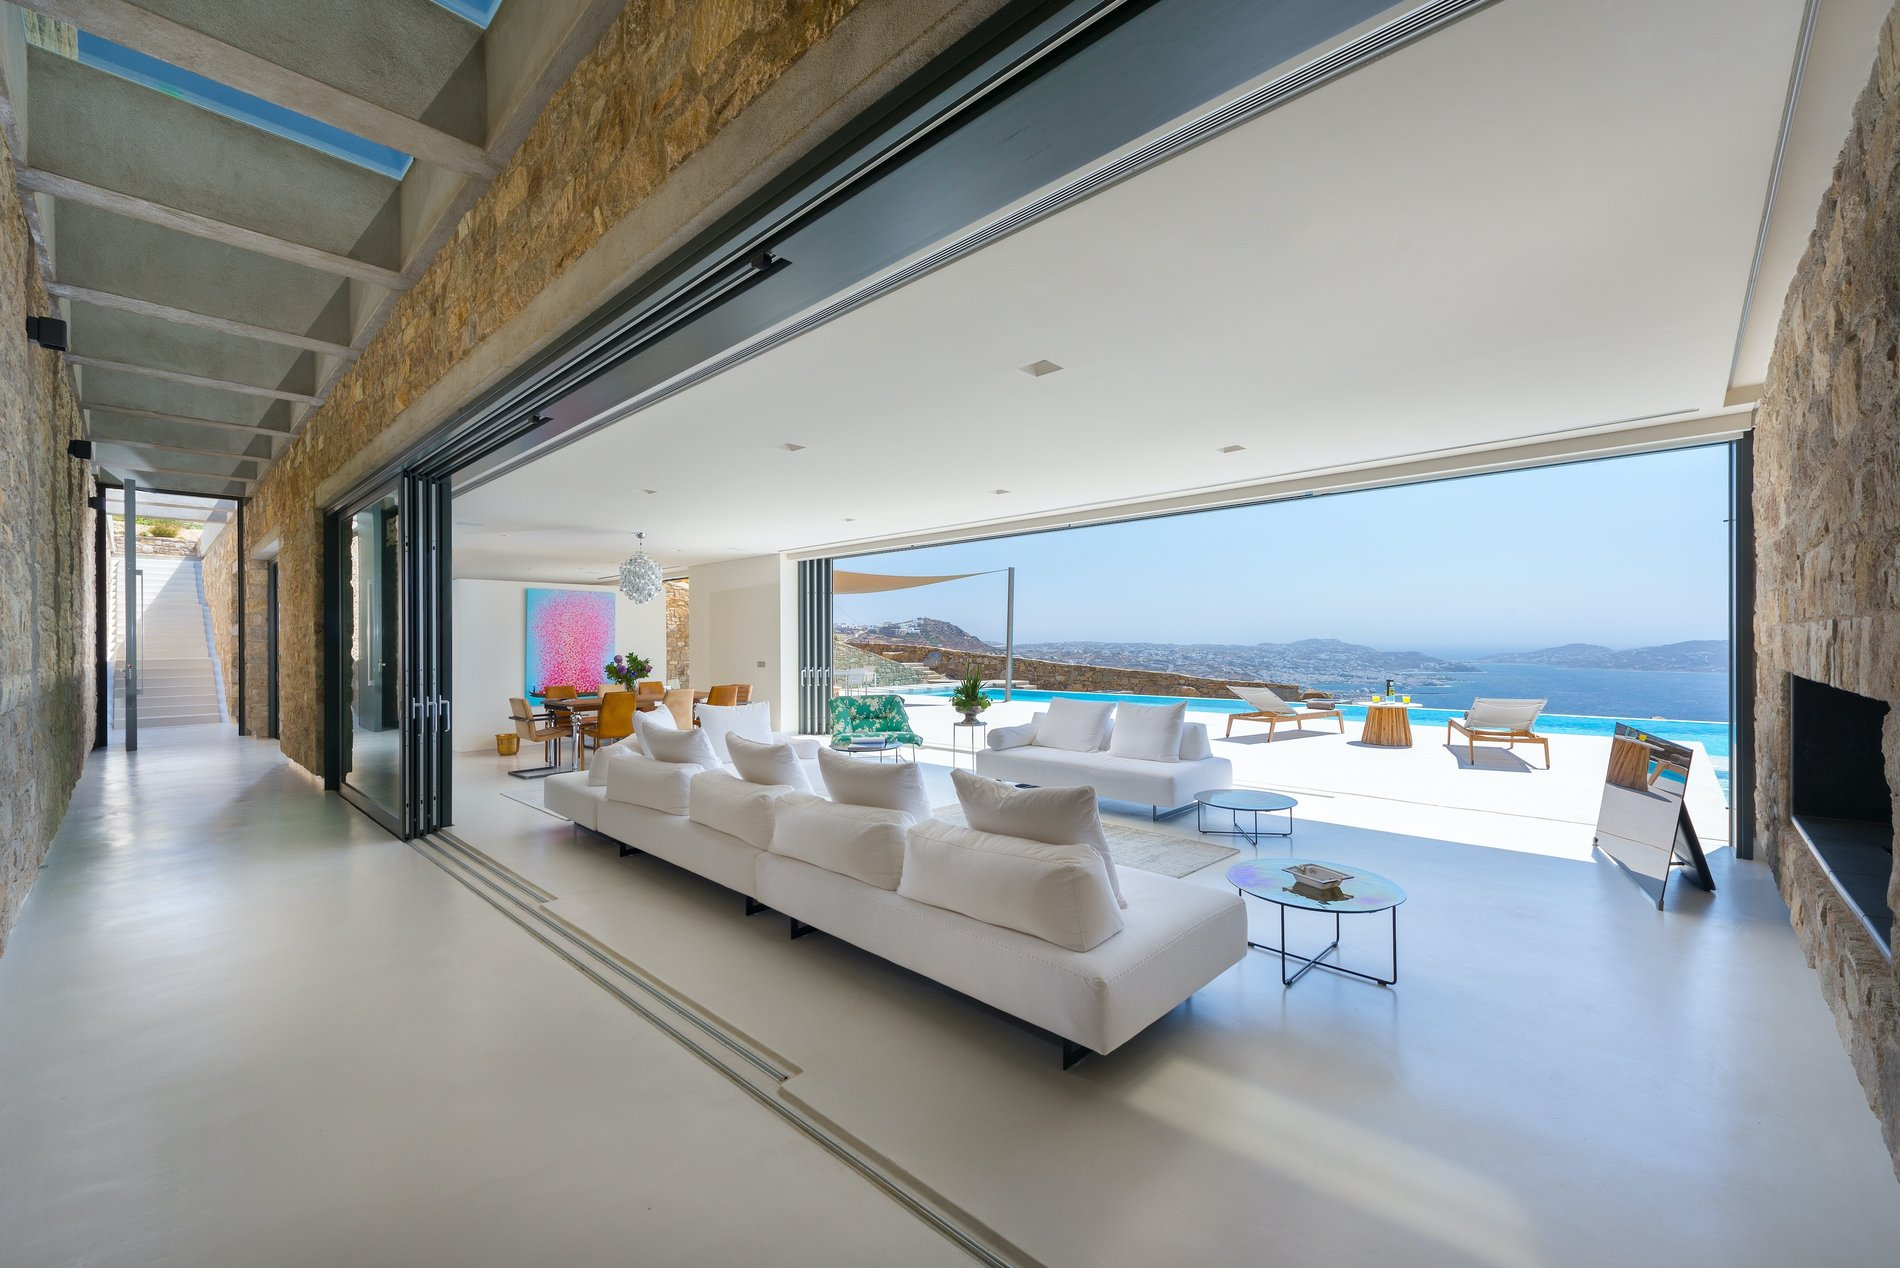 Recessed gliding patio doors create true indoor/outdoor living spaces. custom modern home Mykonos Greece